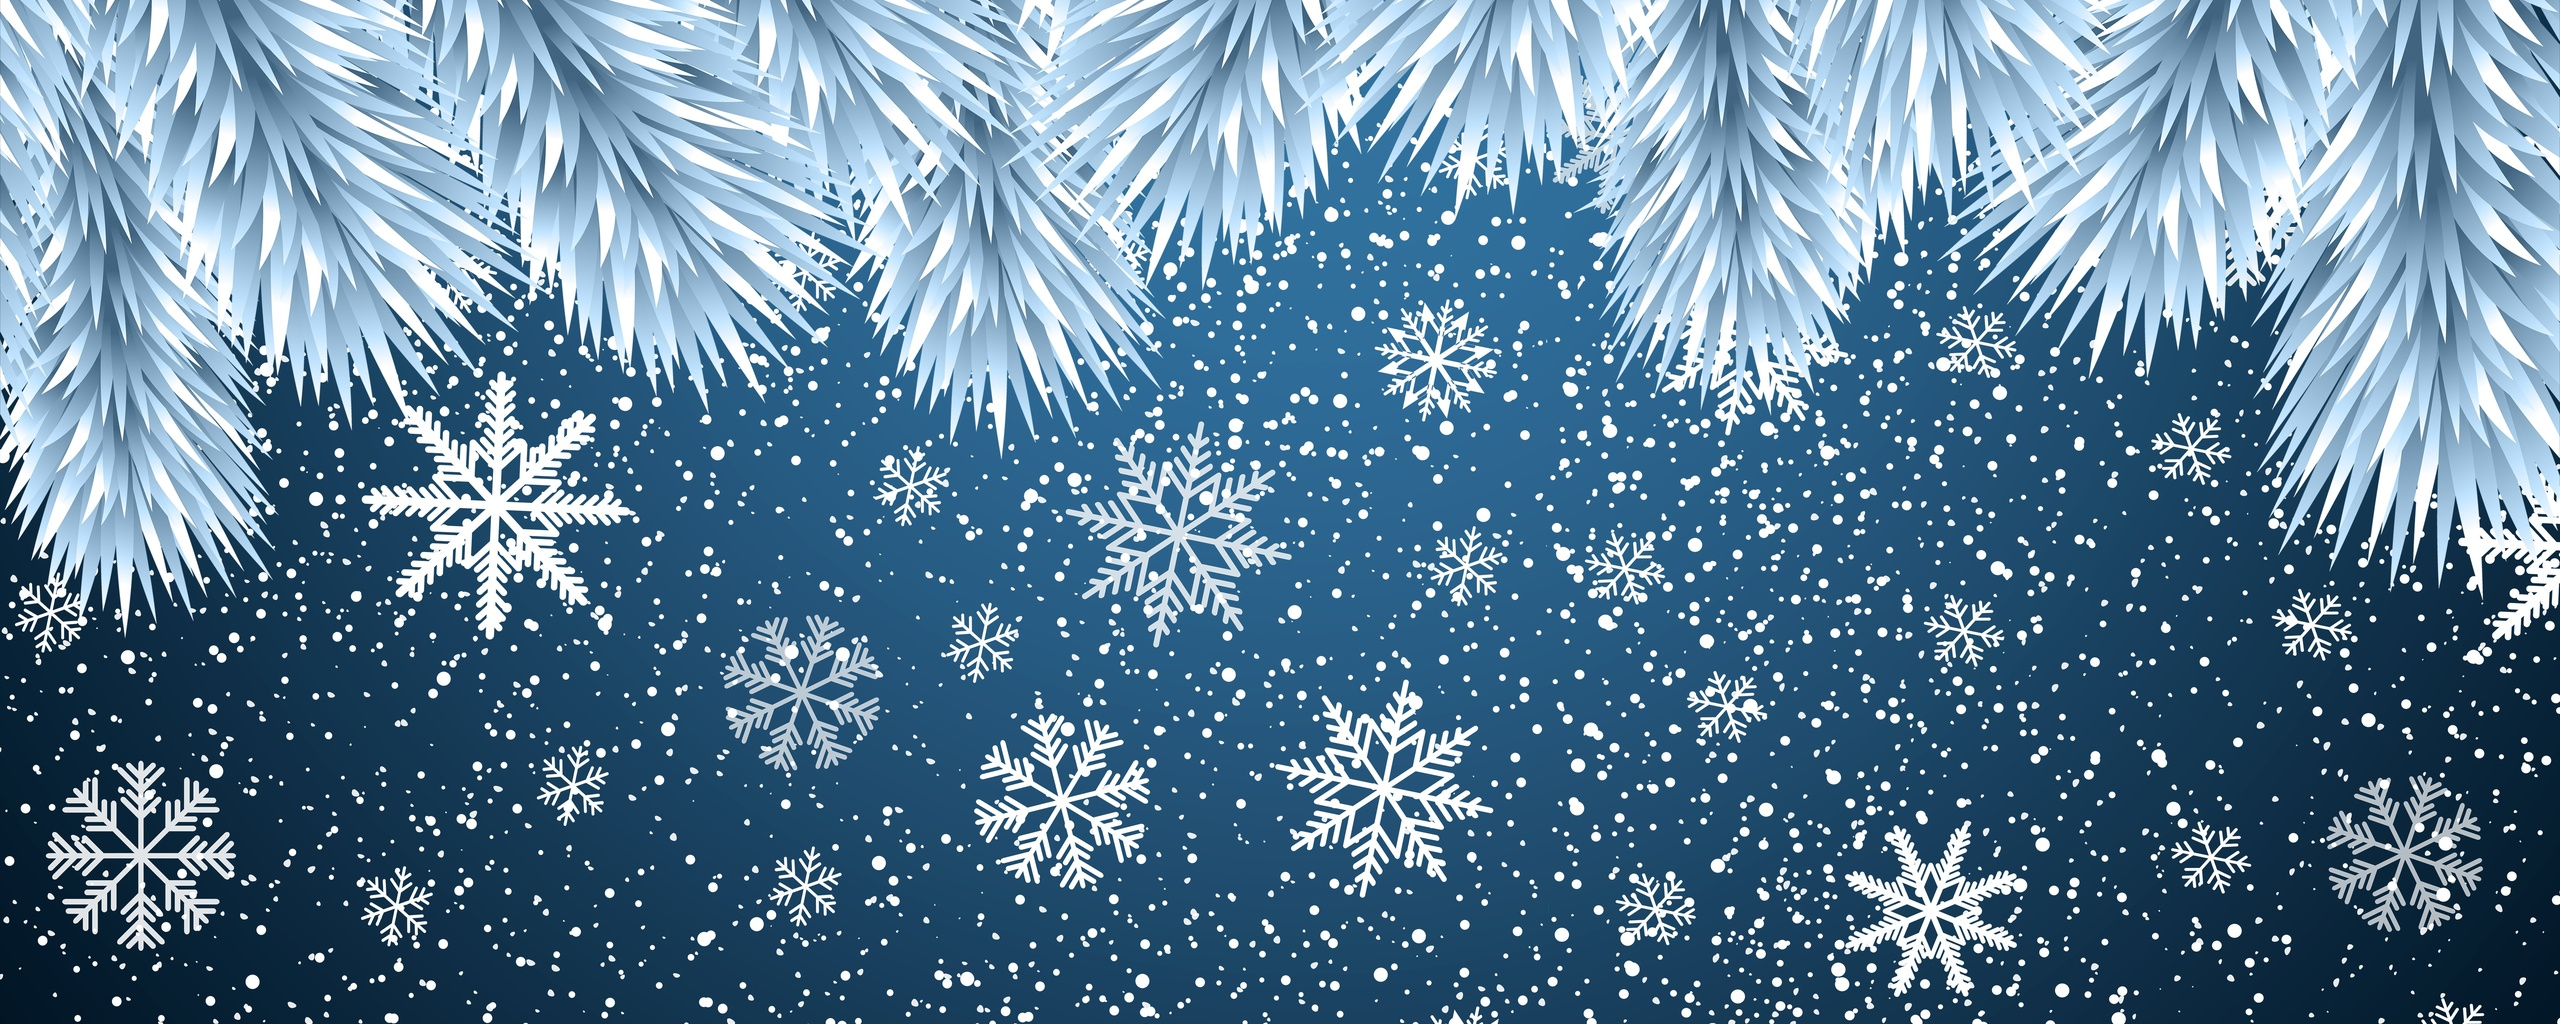 christmas-snowflakes-background-8k-b5.jpg